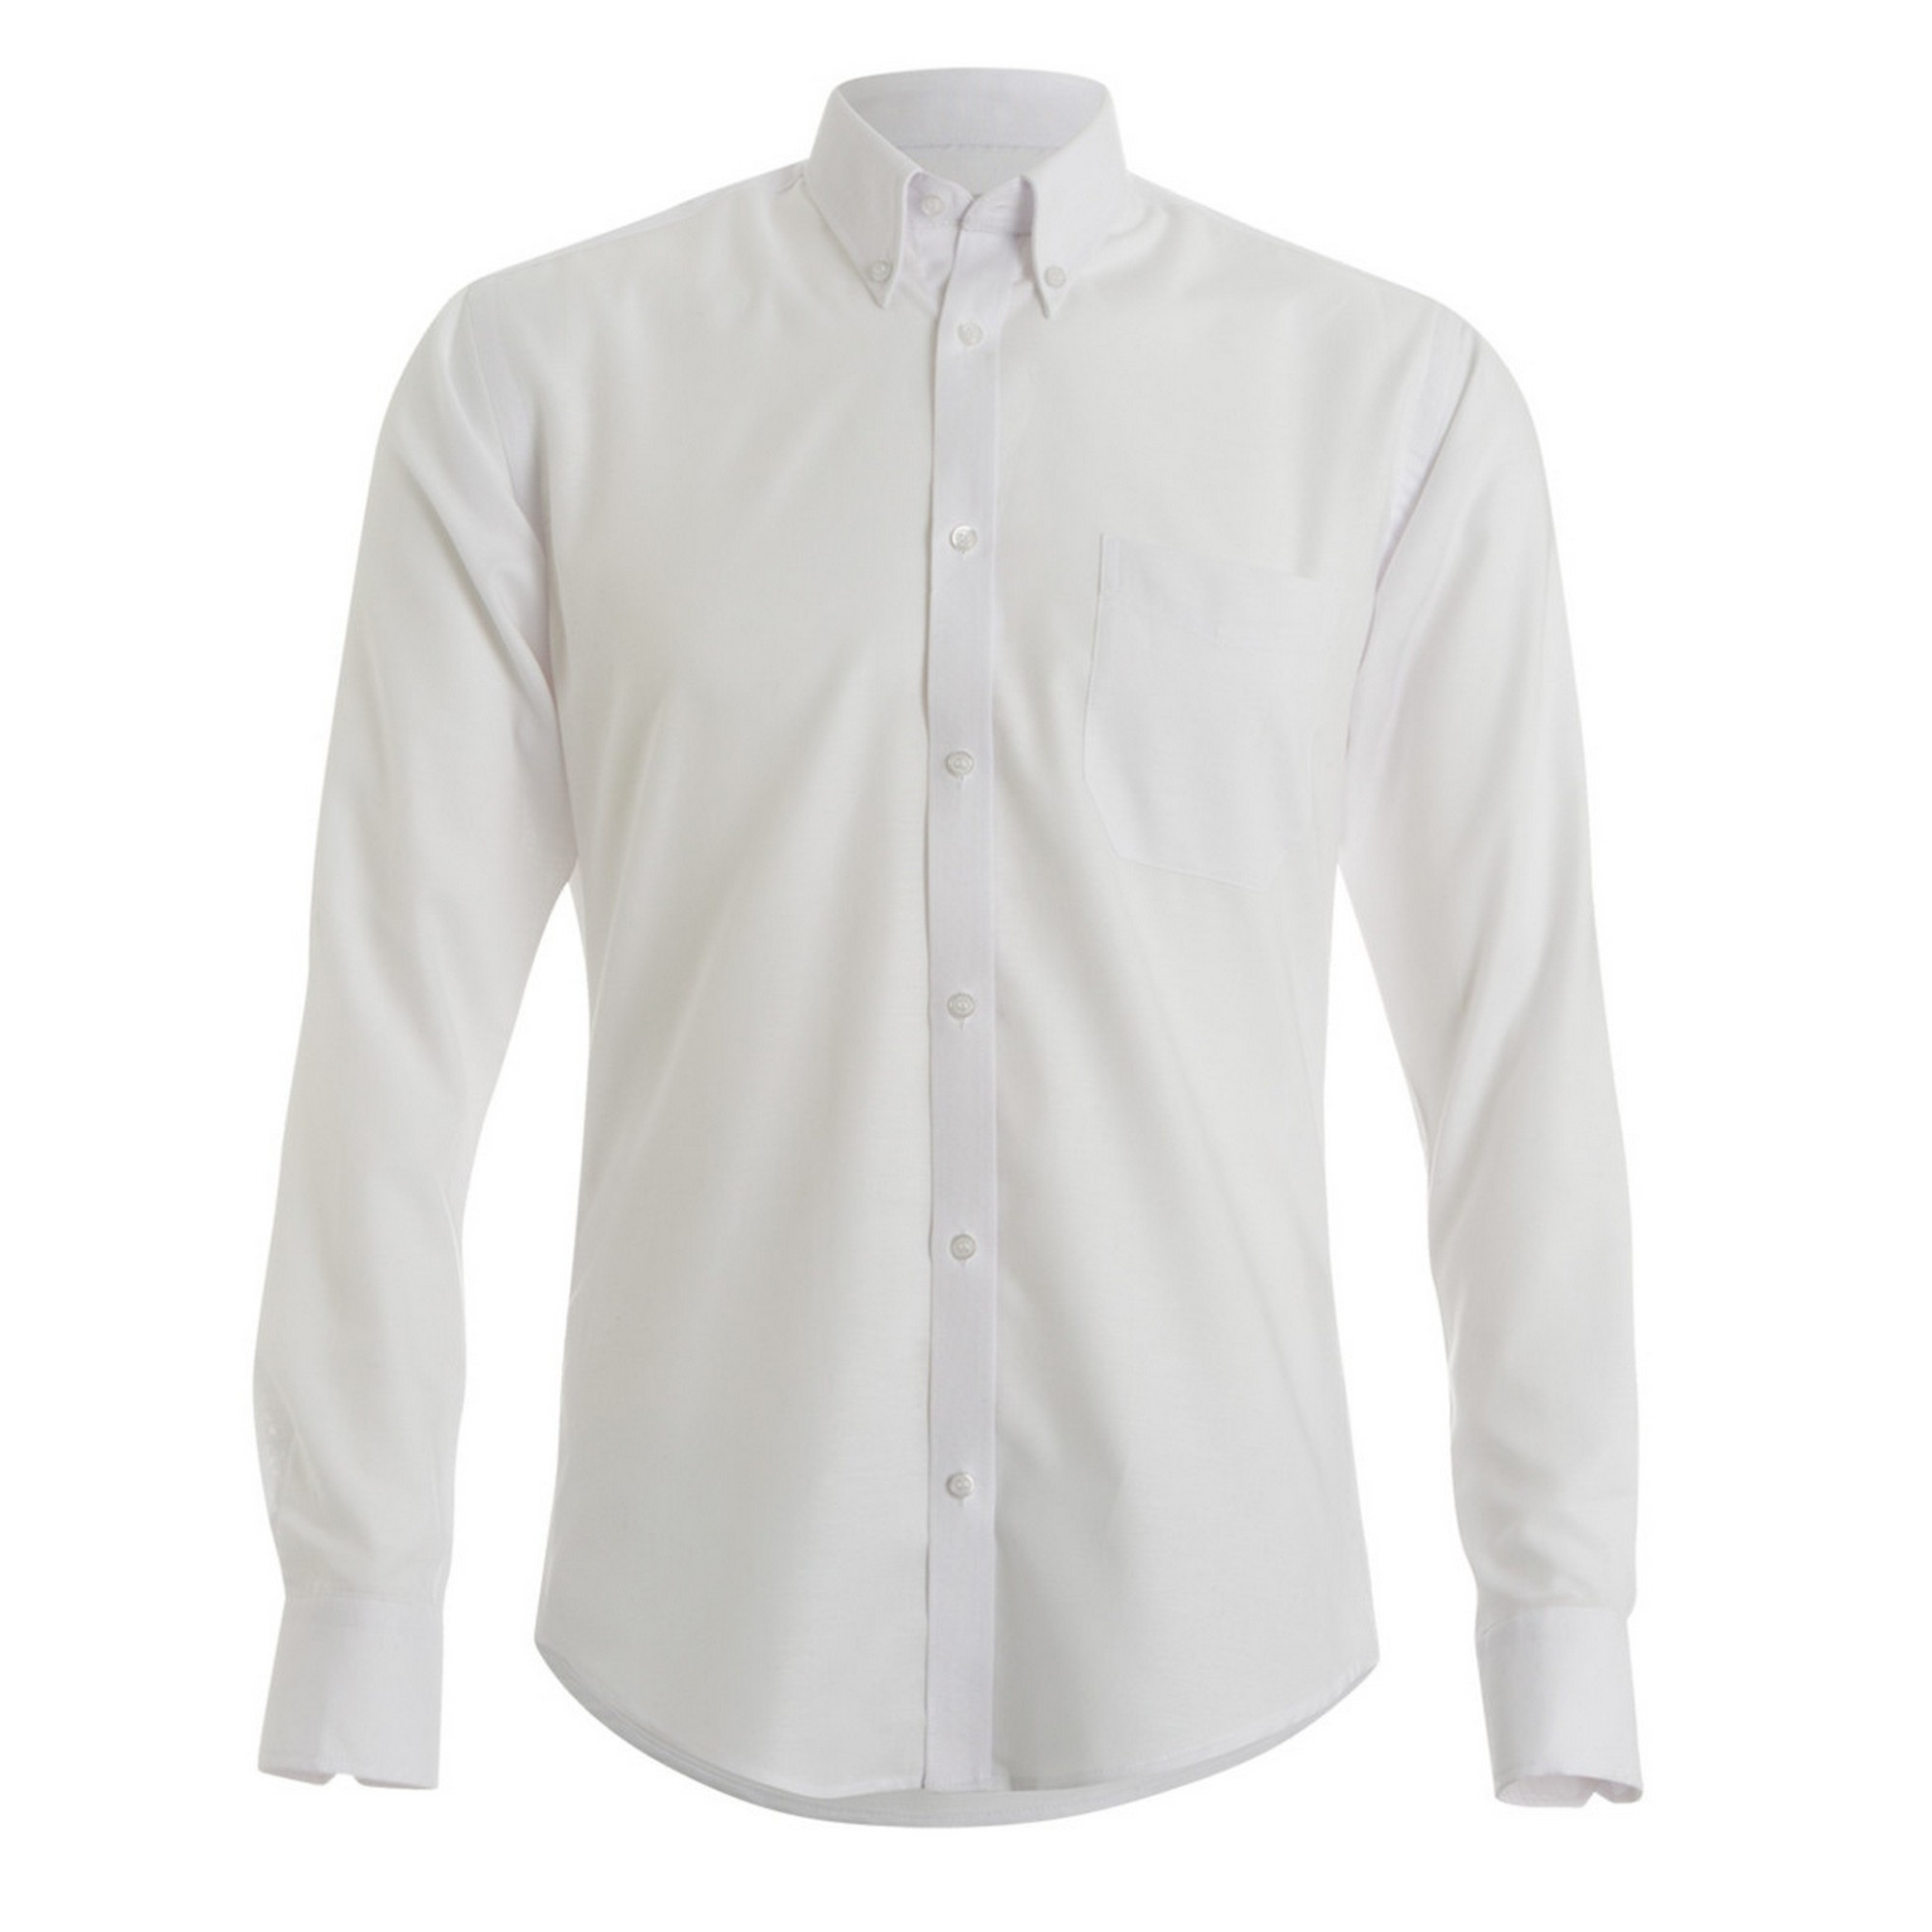 Kustom-Kit-Mens-Long-Sleeve-Oxford-Twill-Shirt-BC3722